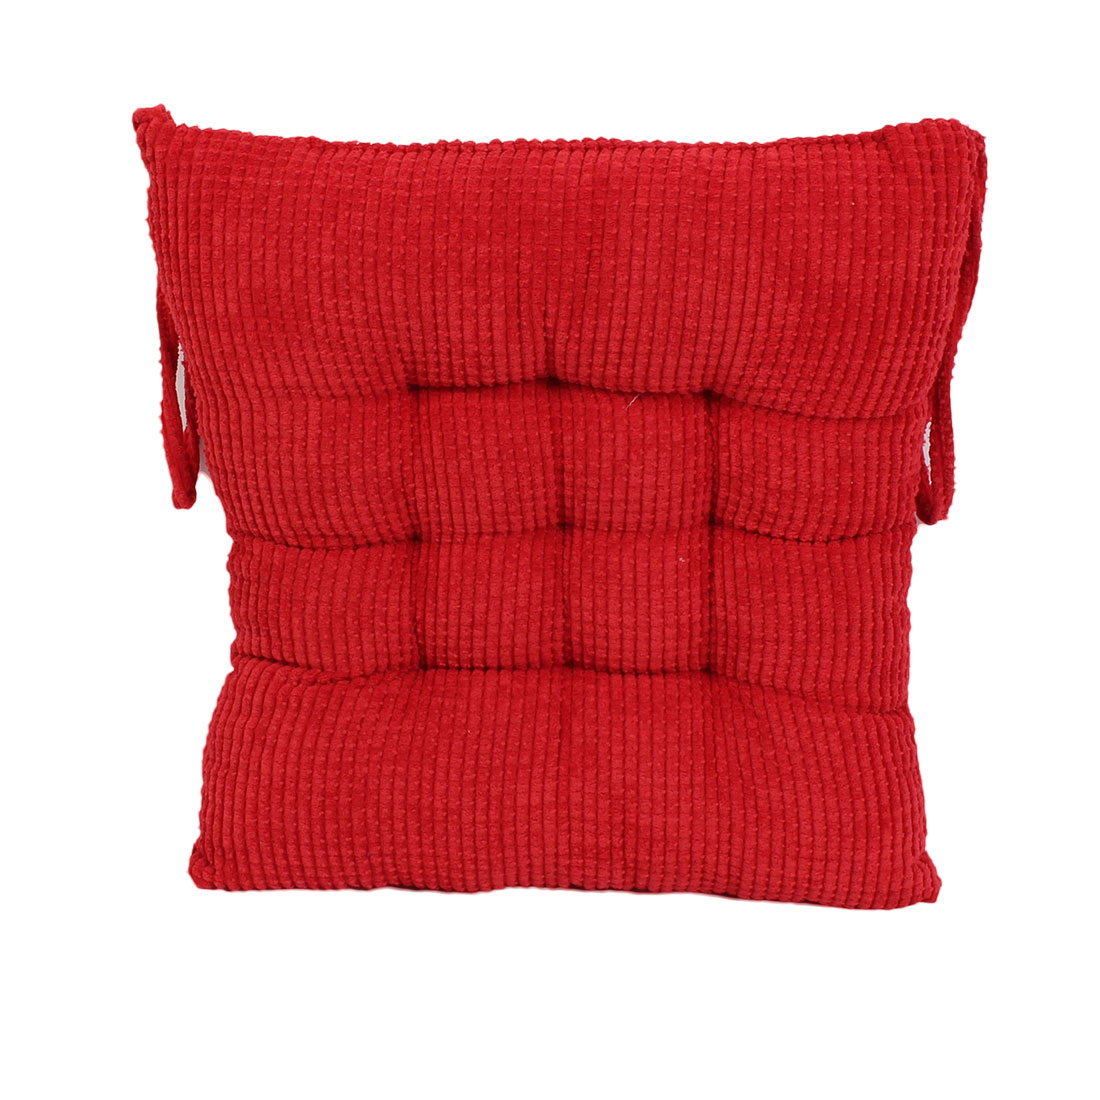 Household Office Corduroy Square Shaped Thickness Chair Cushion Red